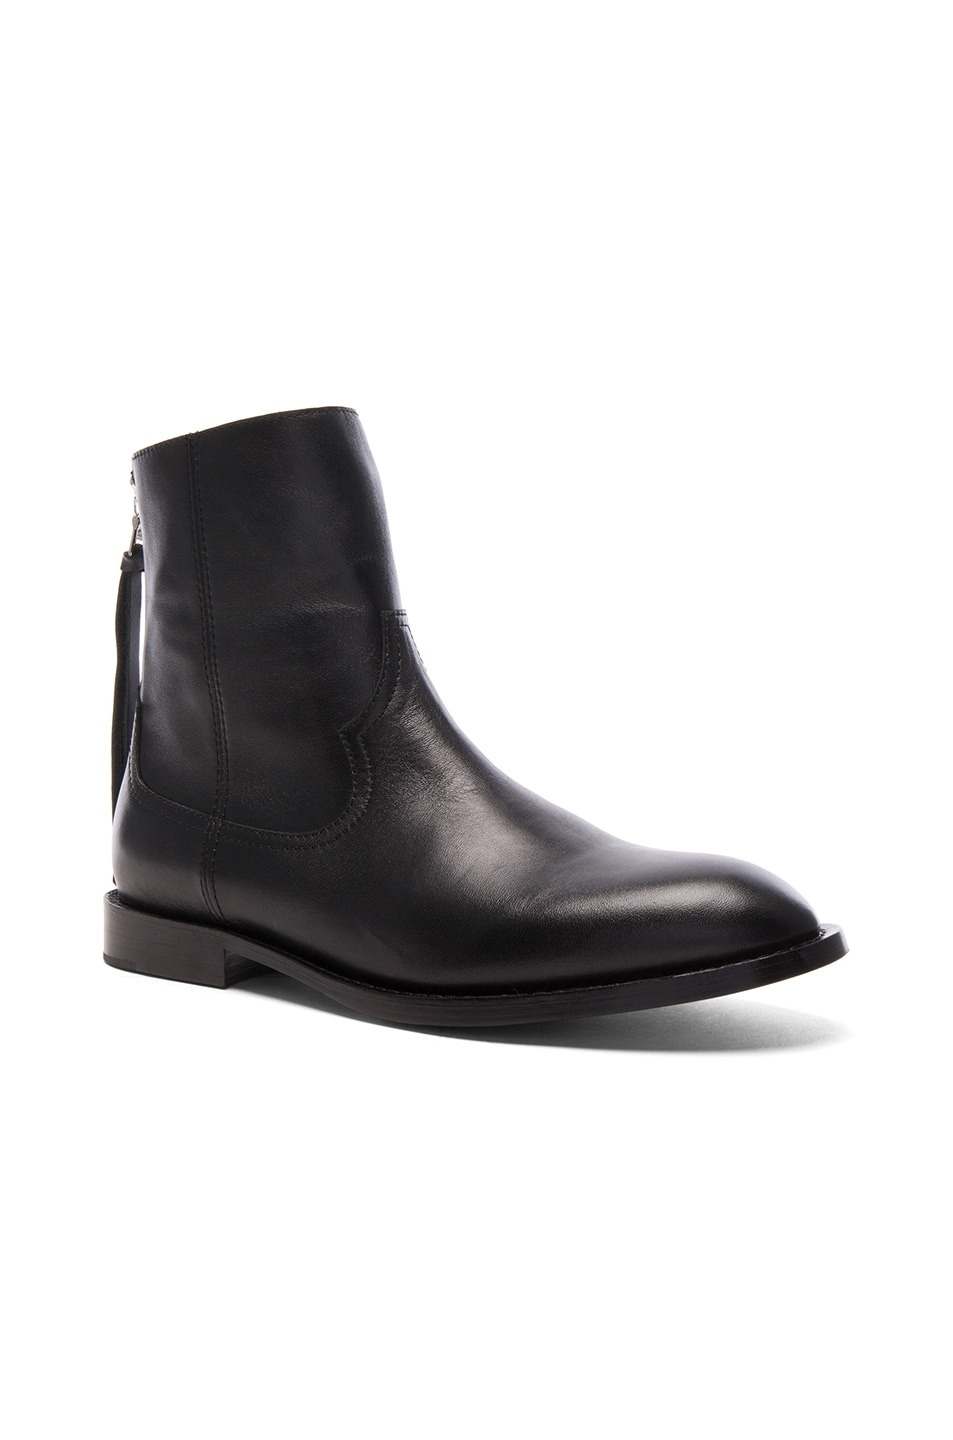 Image 1 of Amiri Leather Shane Boots in Black Leather